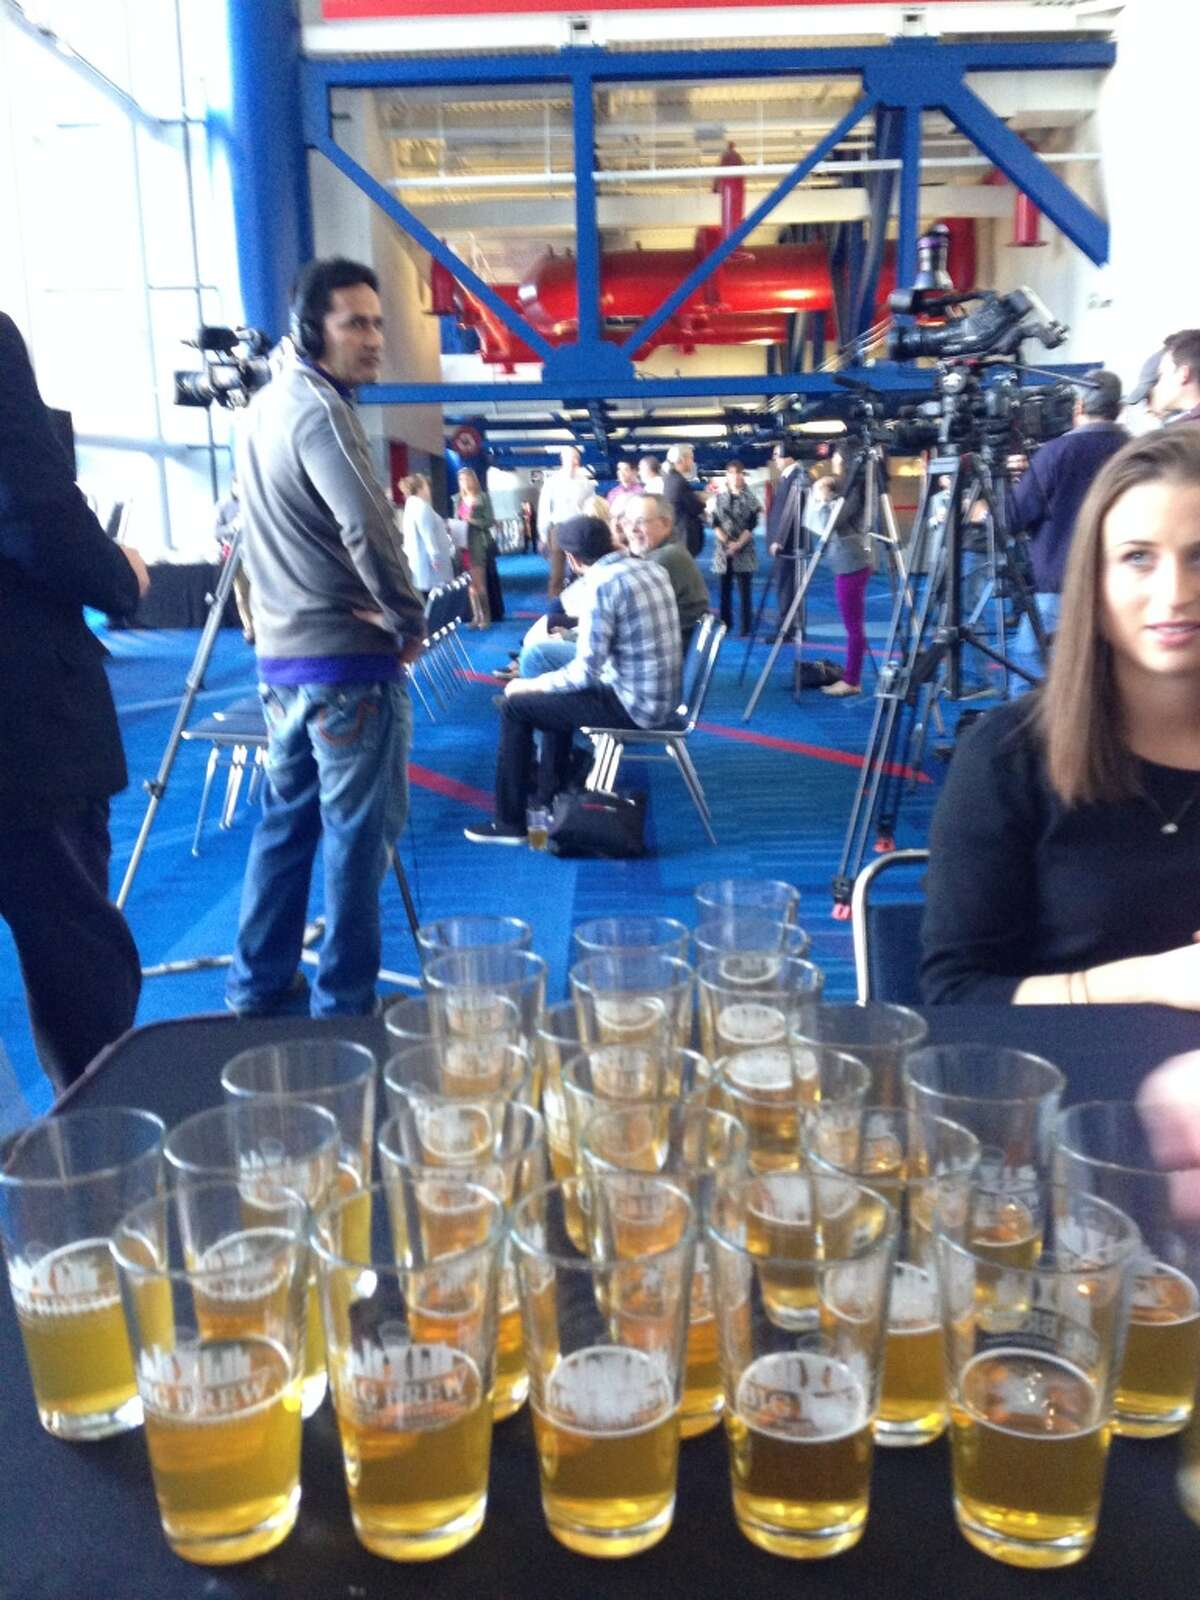 Organizers of the news conference set out glasses with Saint Arnold beer for a post-announcement toast.